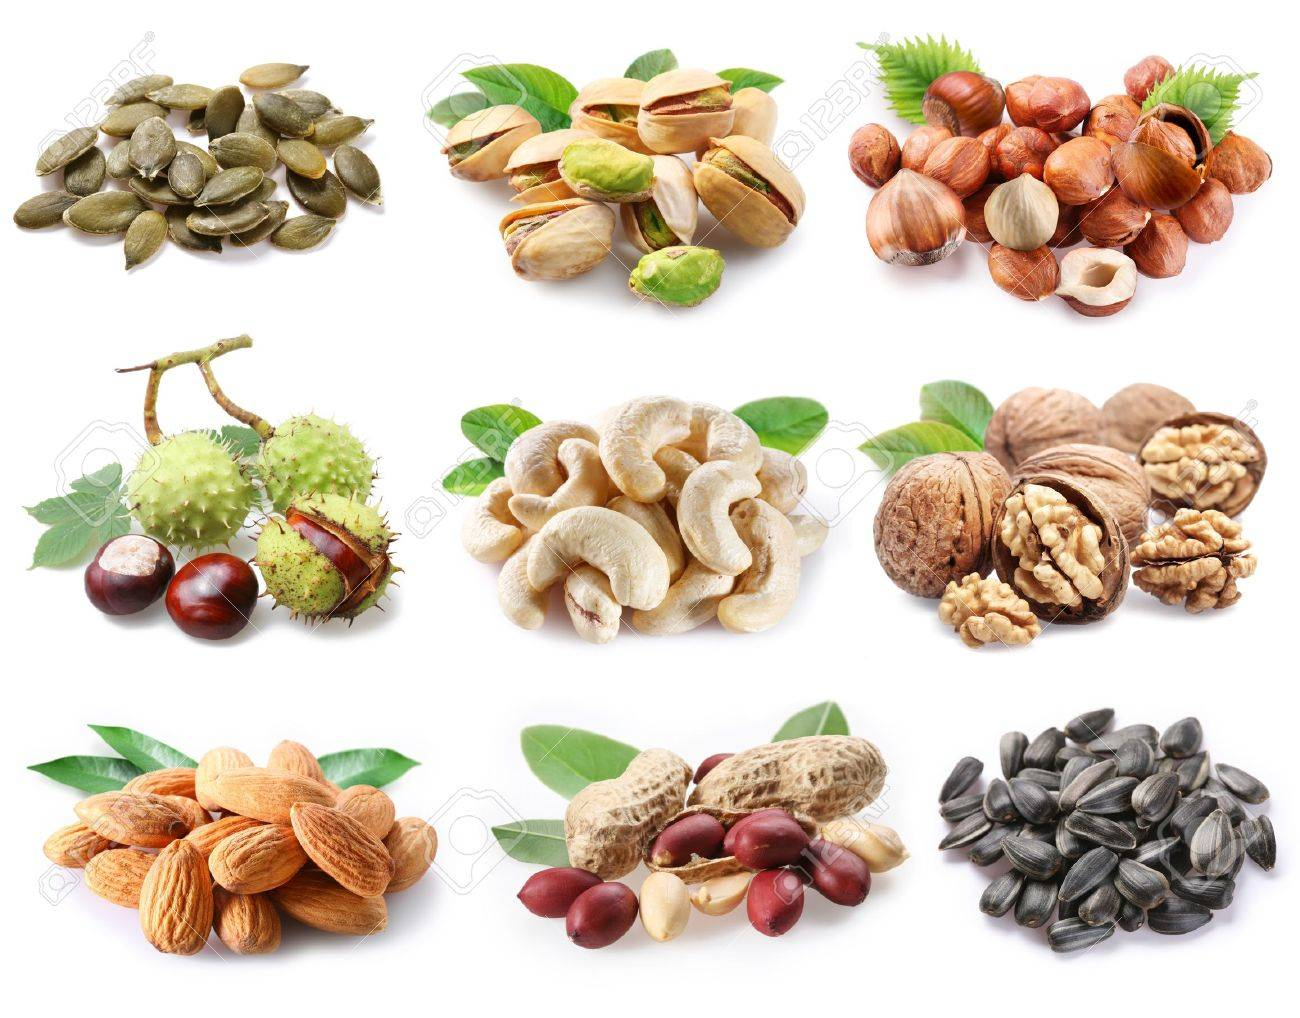 Ñollection of ripe nuts and seeds on a white background - 8402943